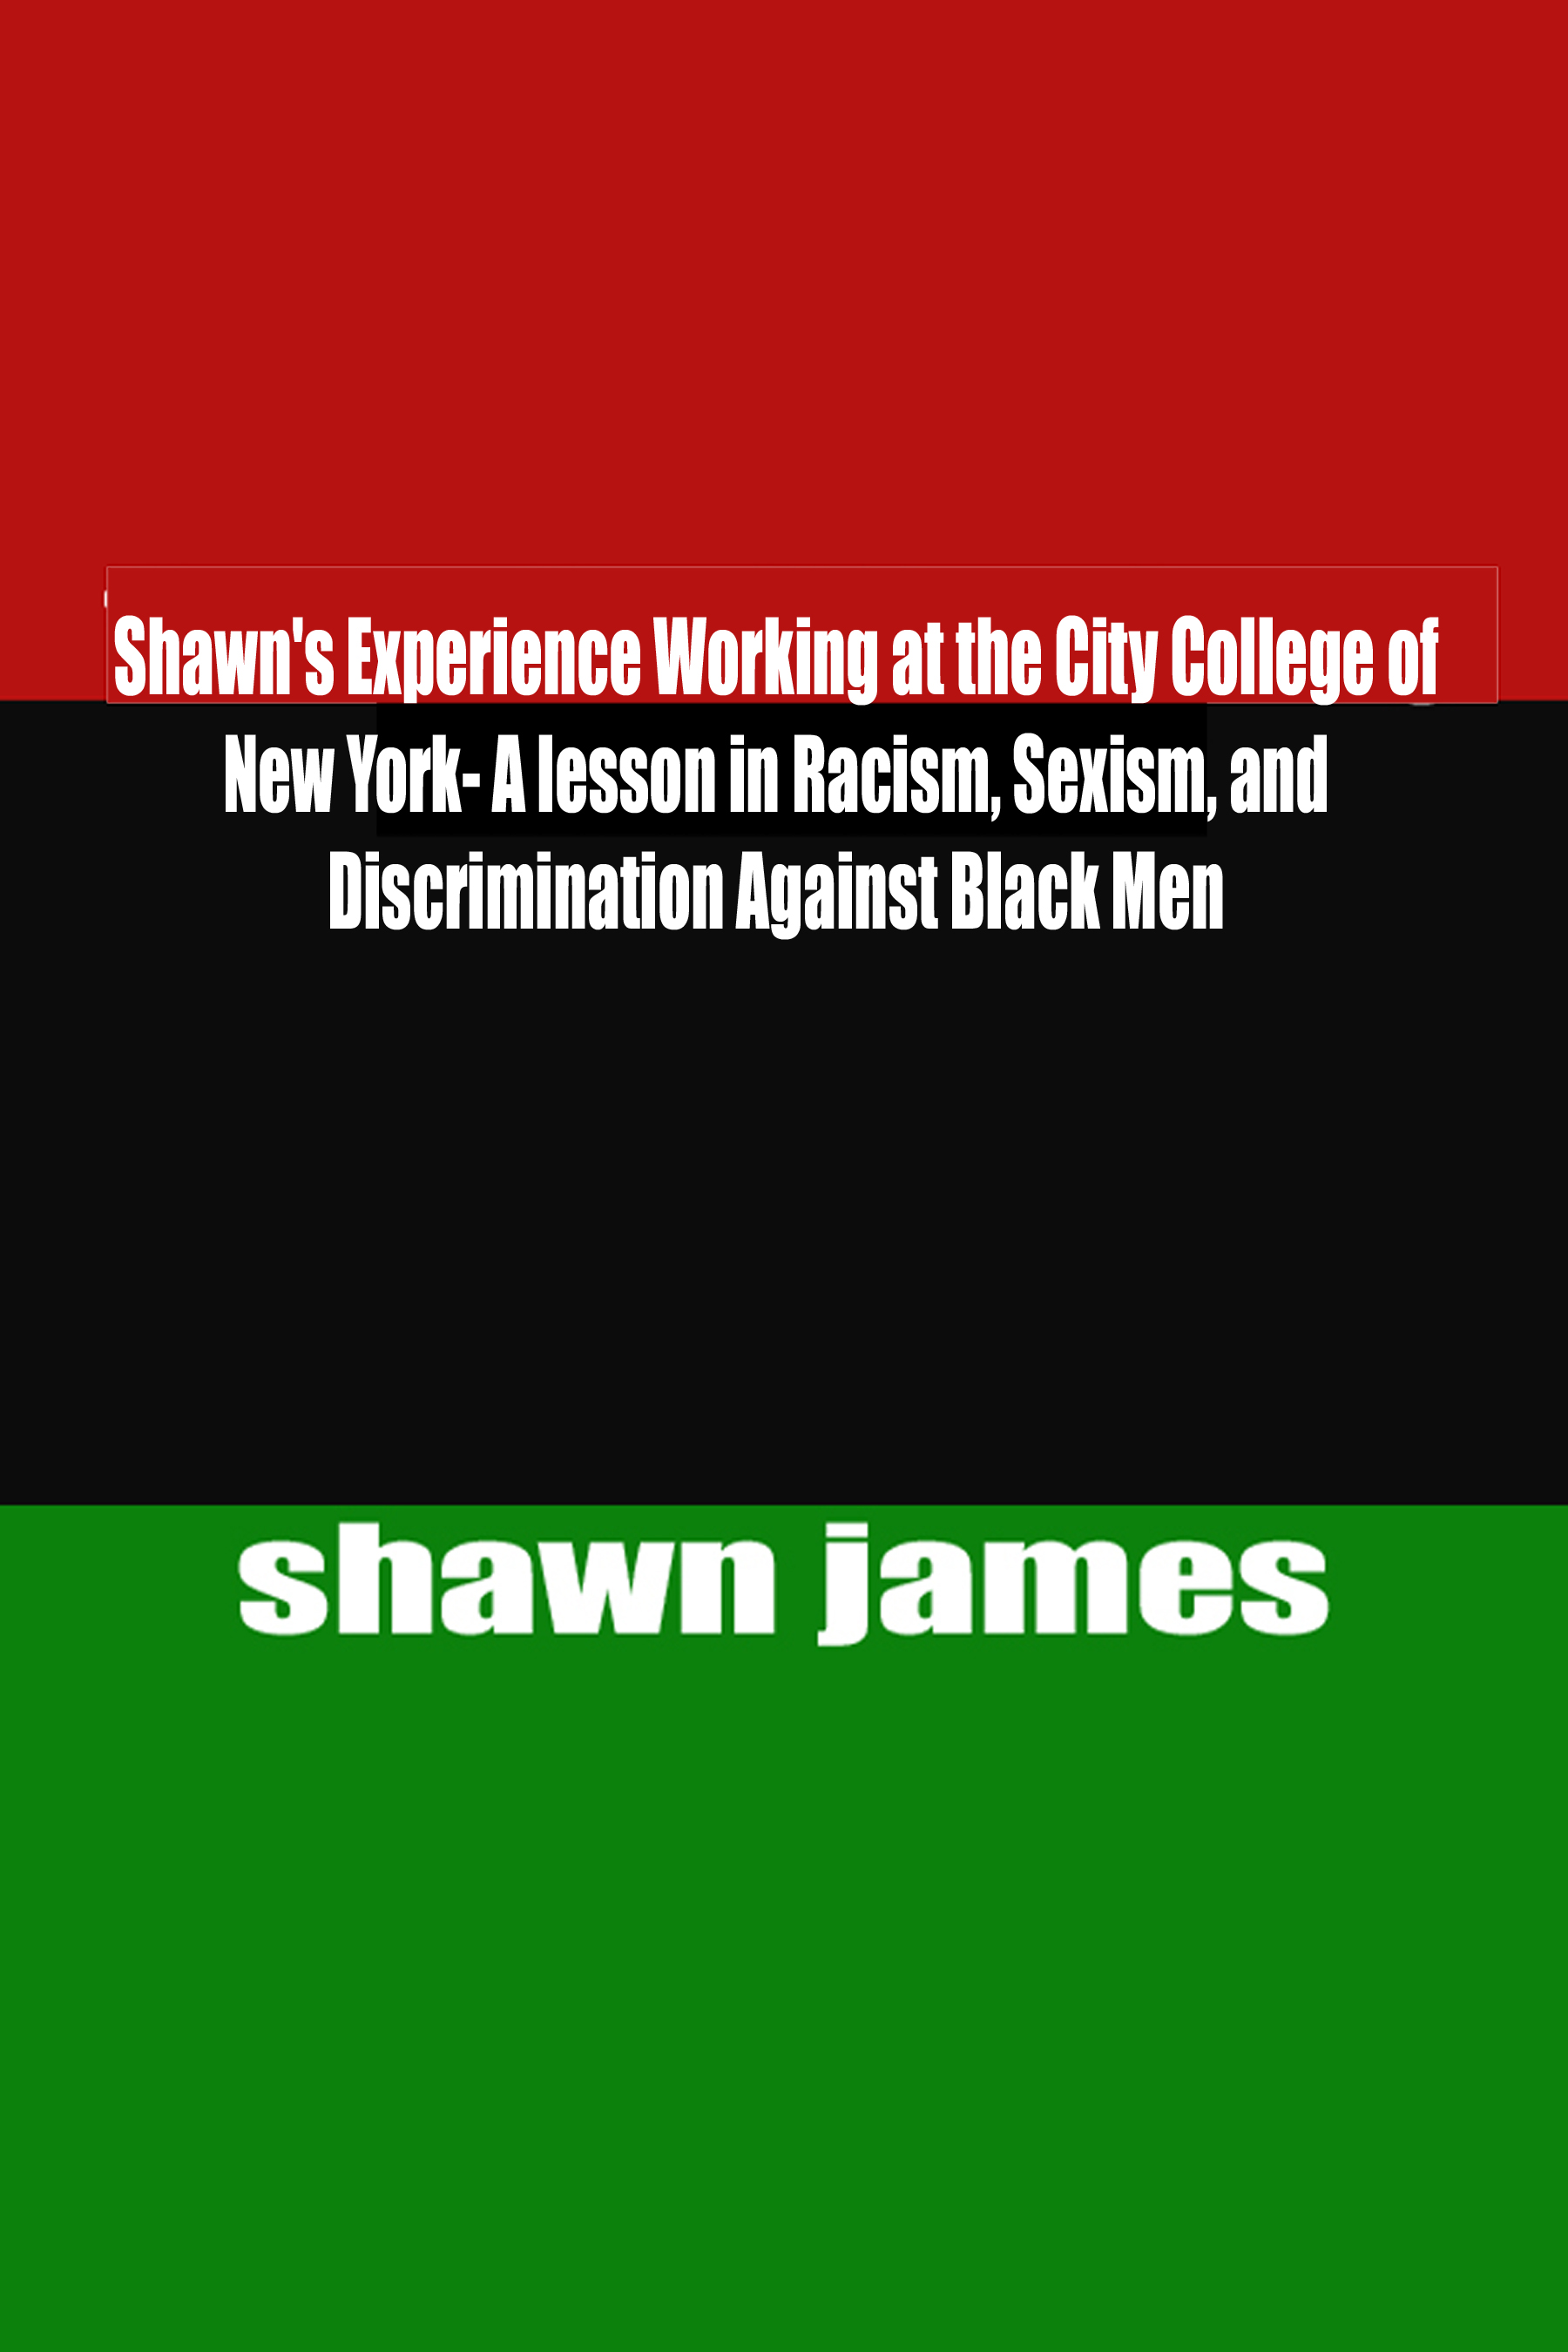 Shawn James - Shawn's Experience Working at the City College of New York- A lesson in Racism, Sexism, and Discrimination Against Black Men